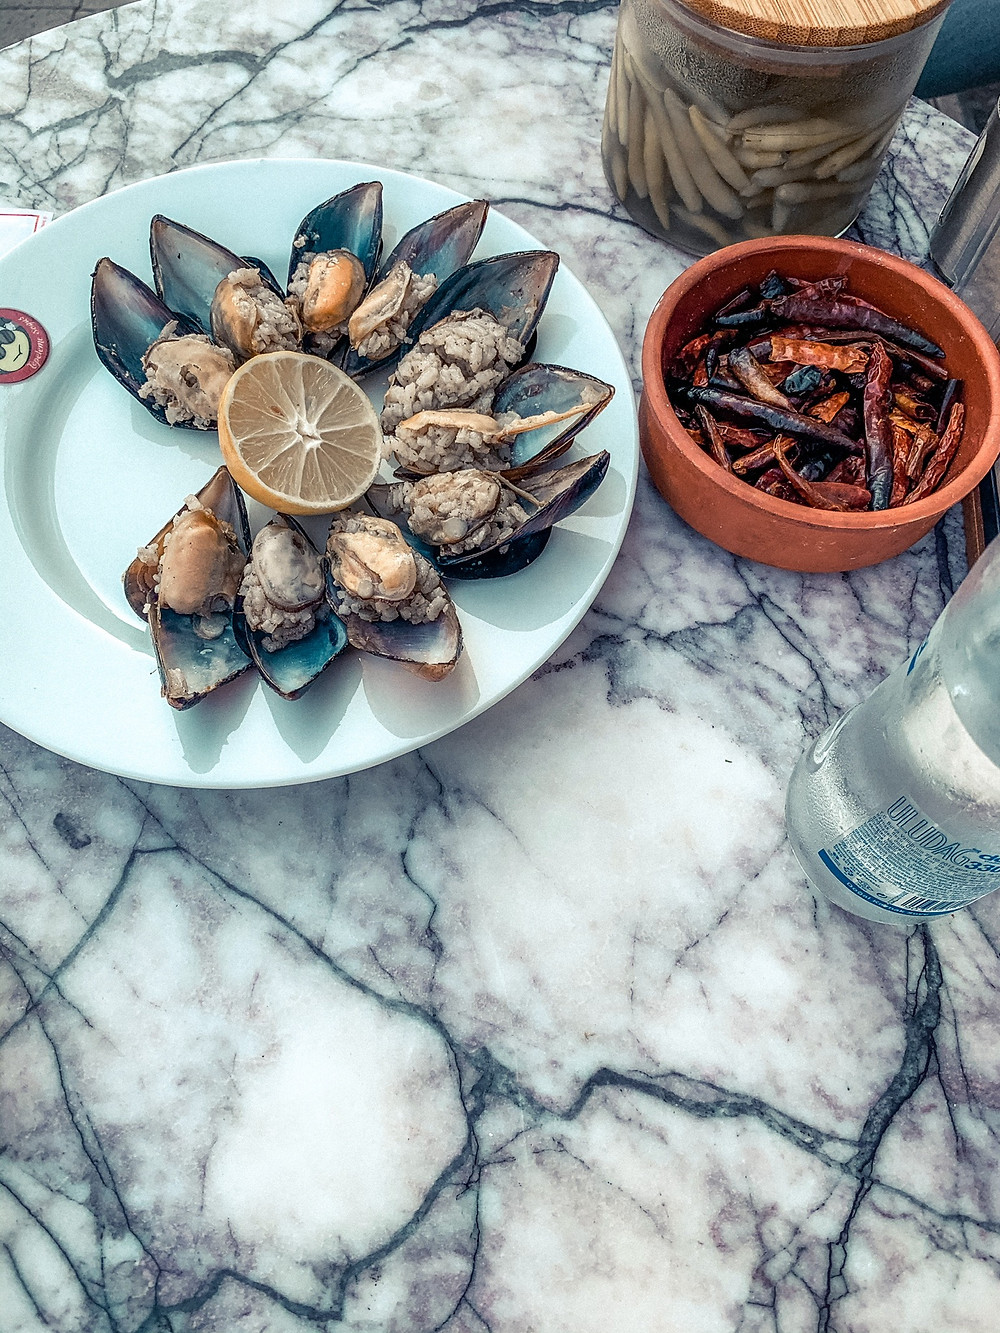 A plate of Turkish mussels